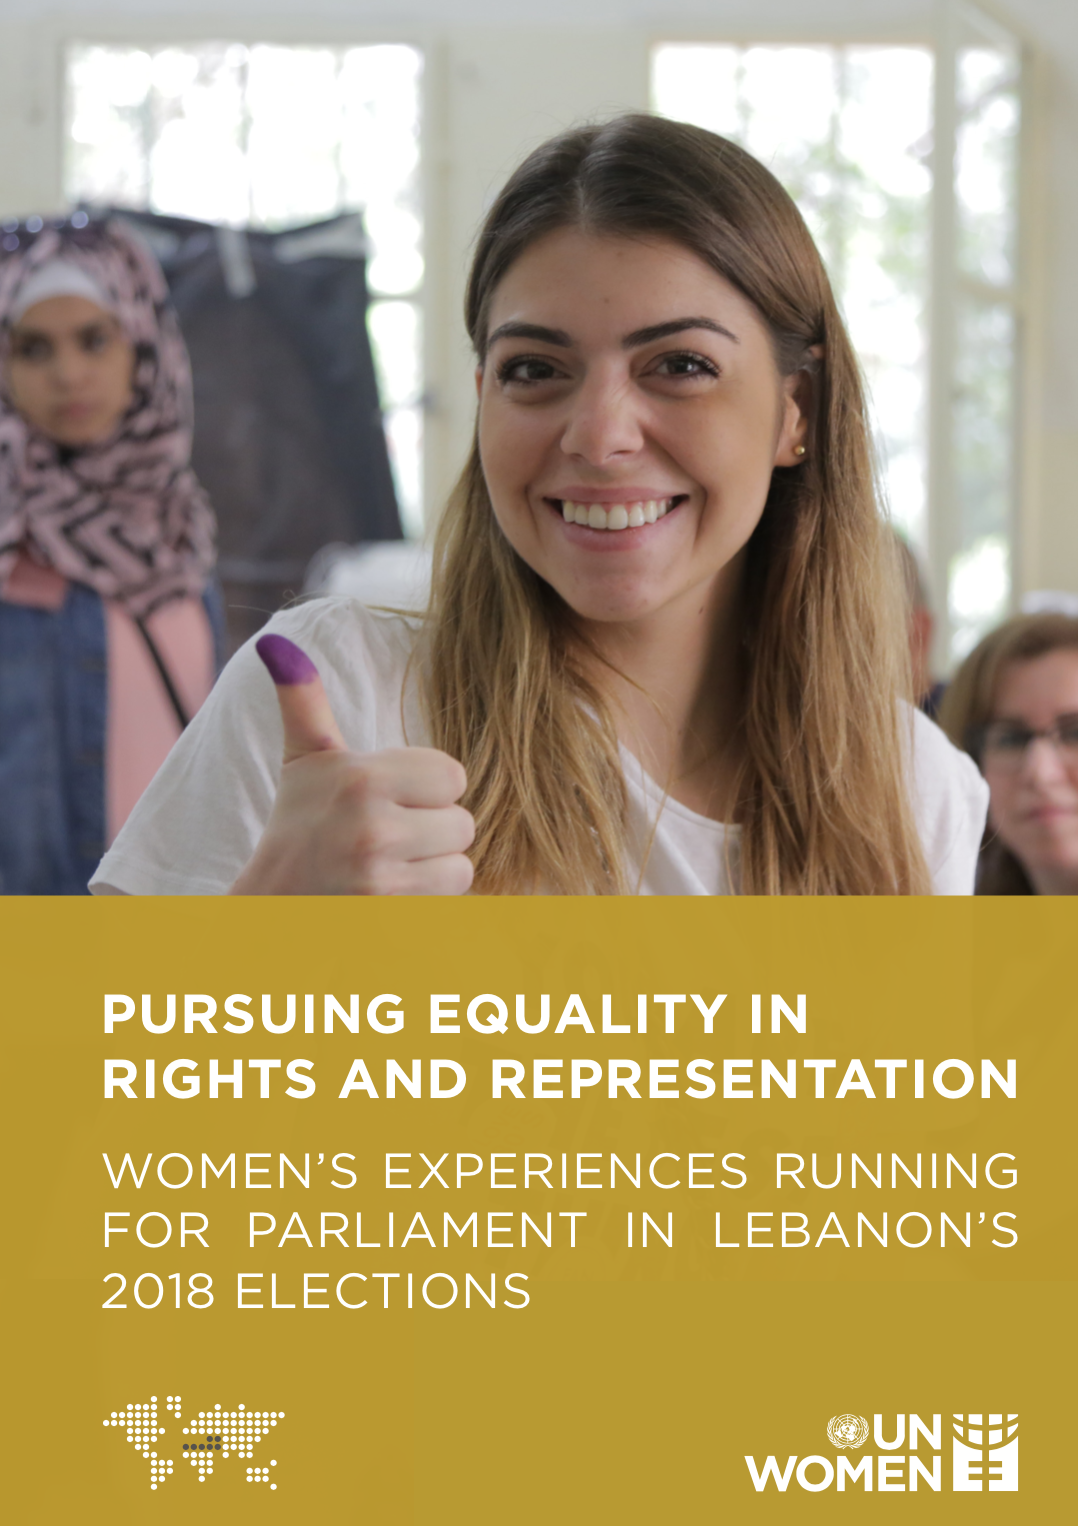 Women's Experiences Running for Parliament in Lebanon's 2018 Elections